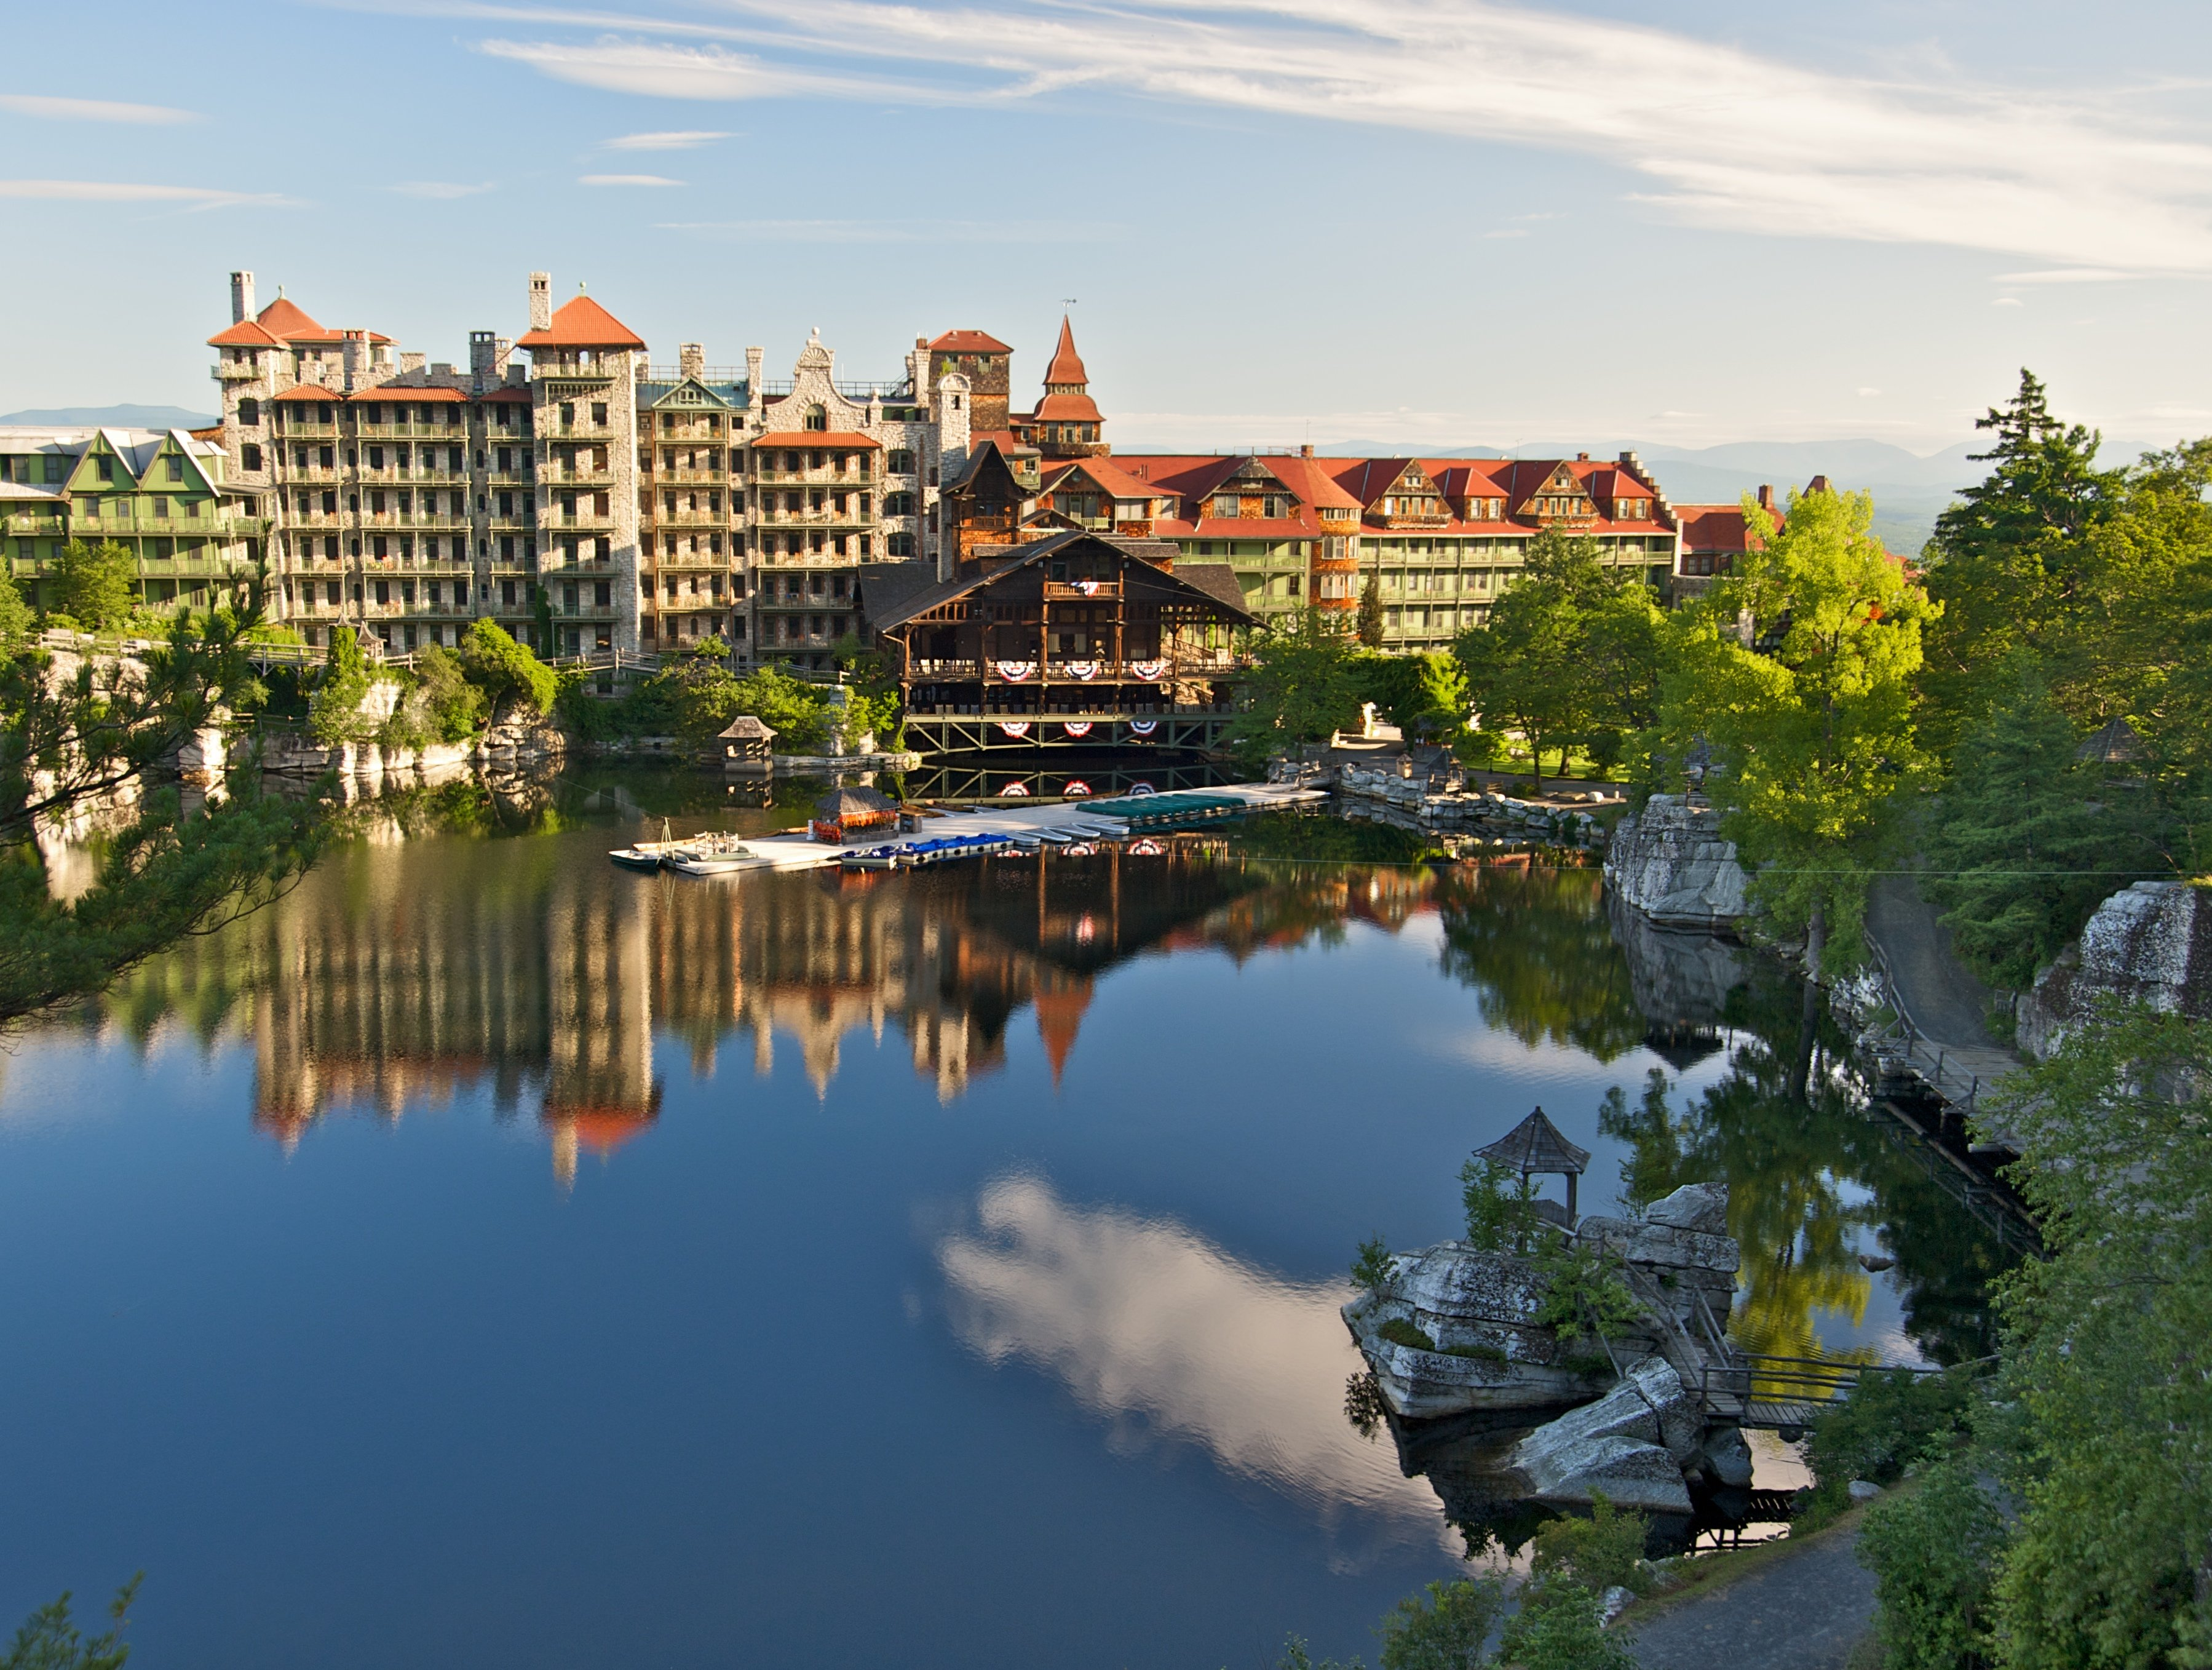 Mohonk_Mountain_House_2011_Main_Buildings_around_Lake_5_FRD_3146